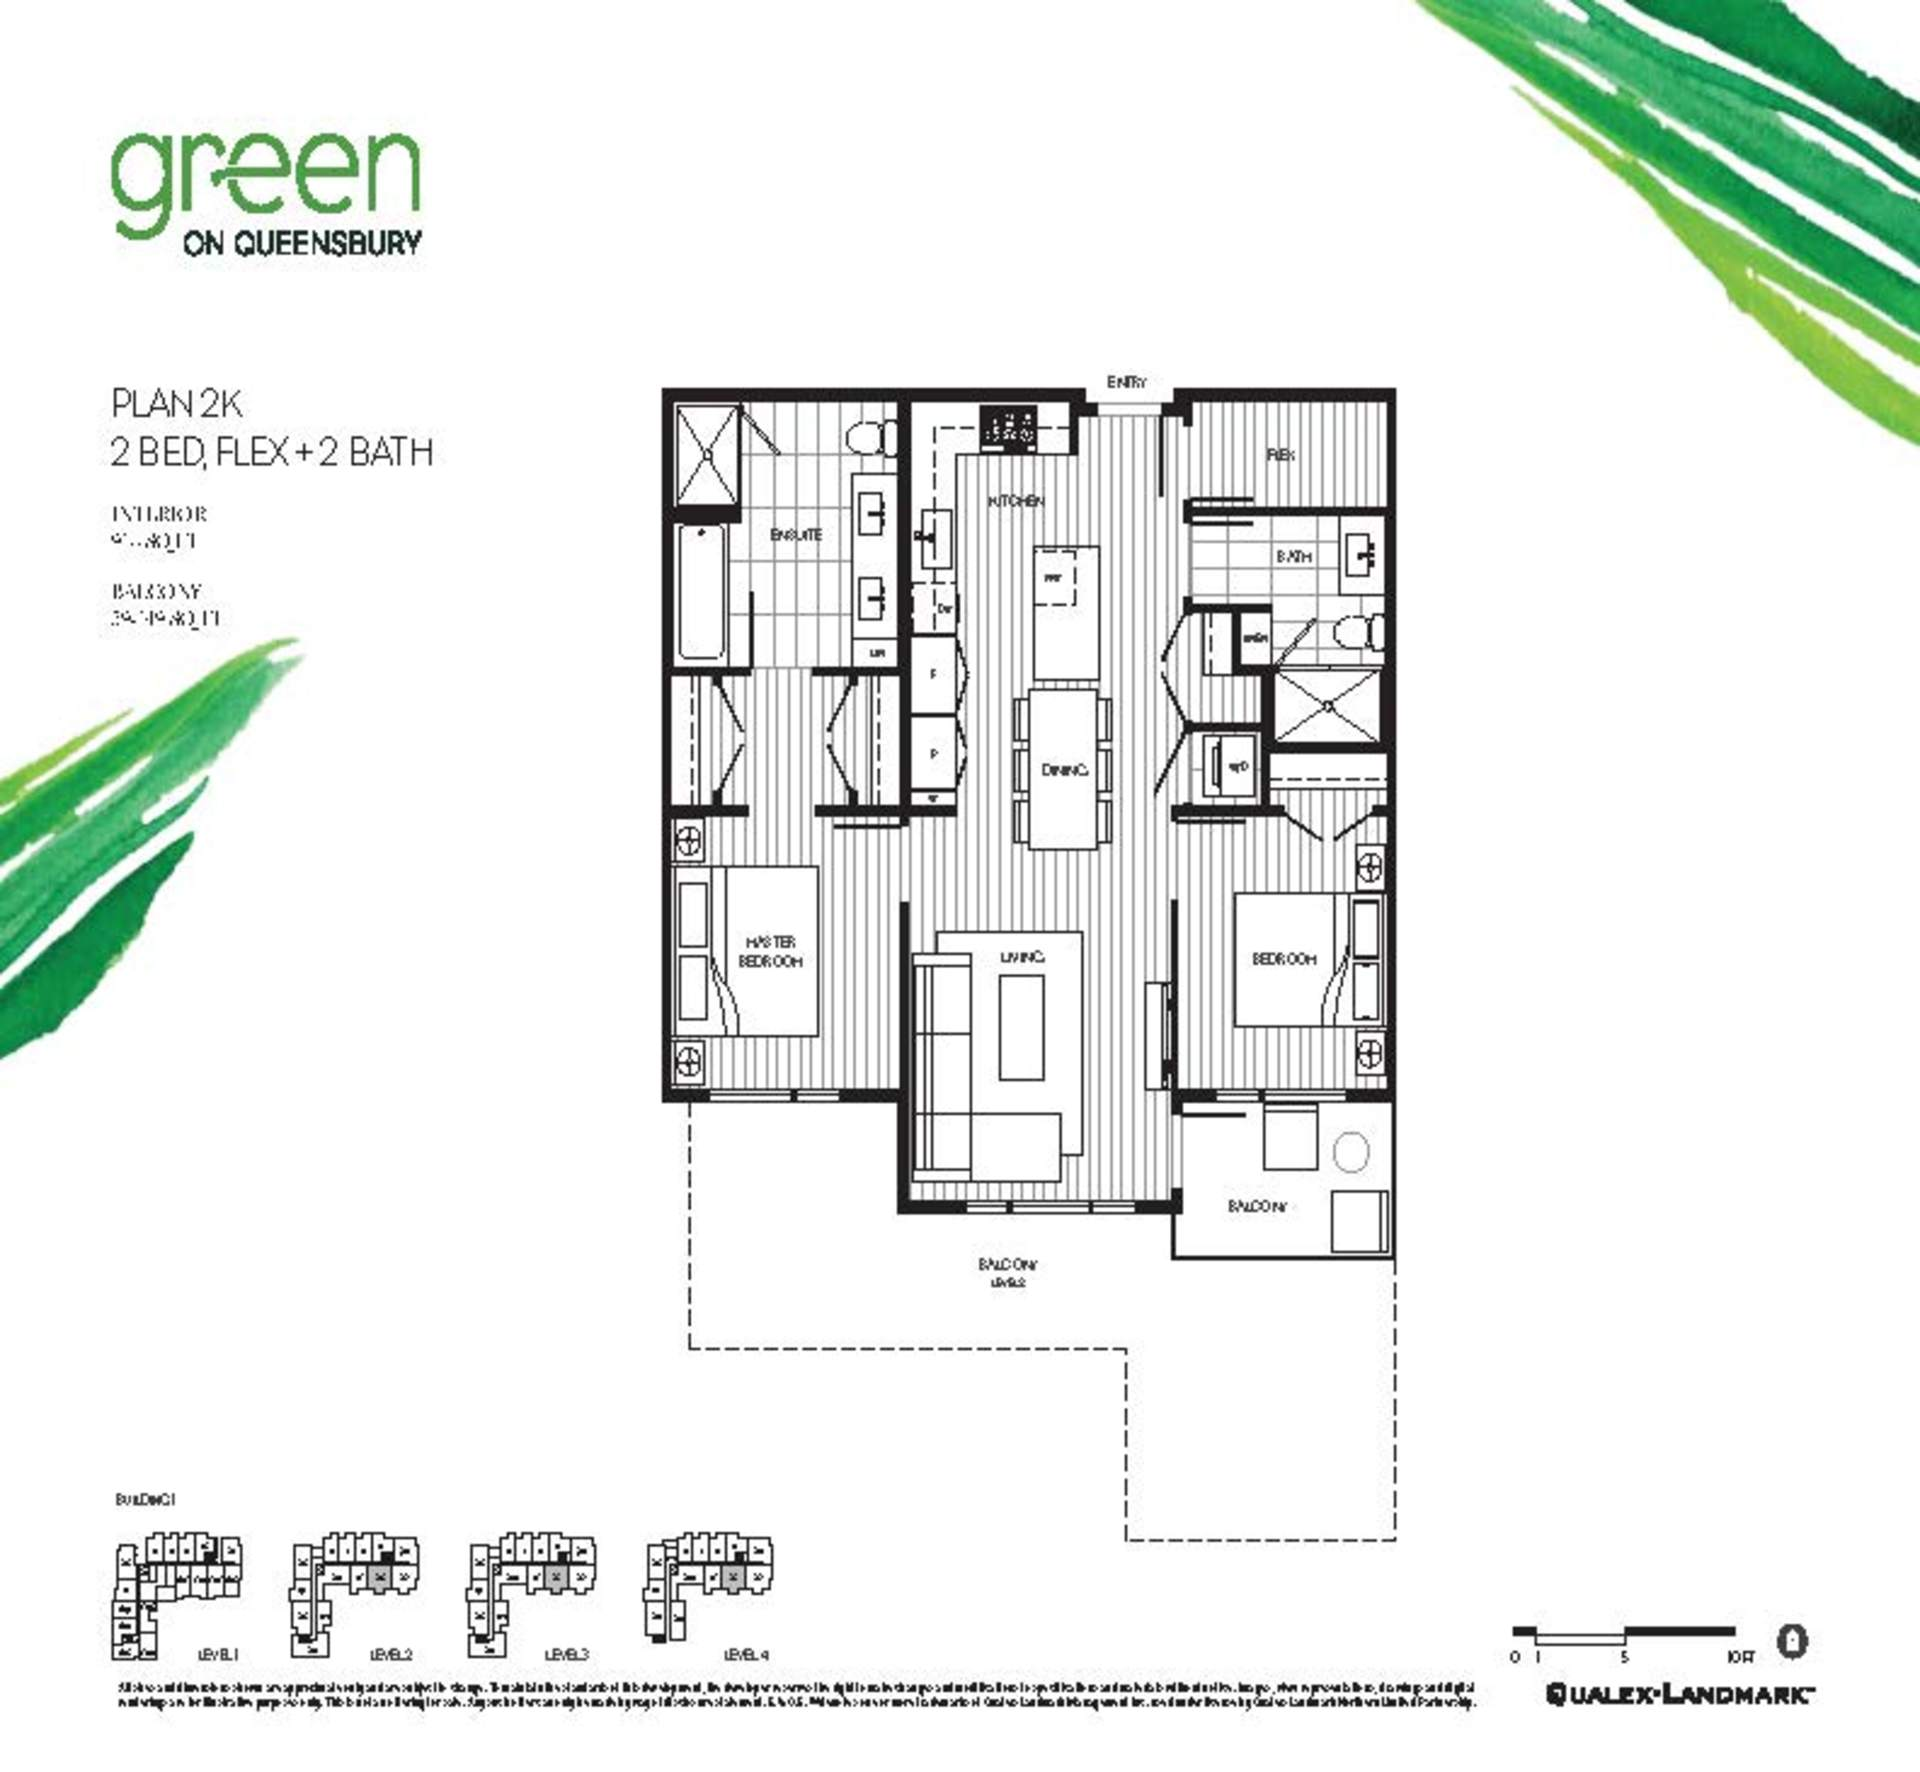 green-on-queensbury-407-plan-2k at 407 - 707 E 3rd Street, Queensbury, North Vancouver